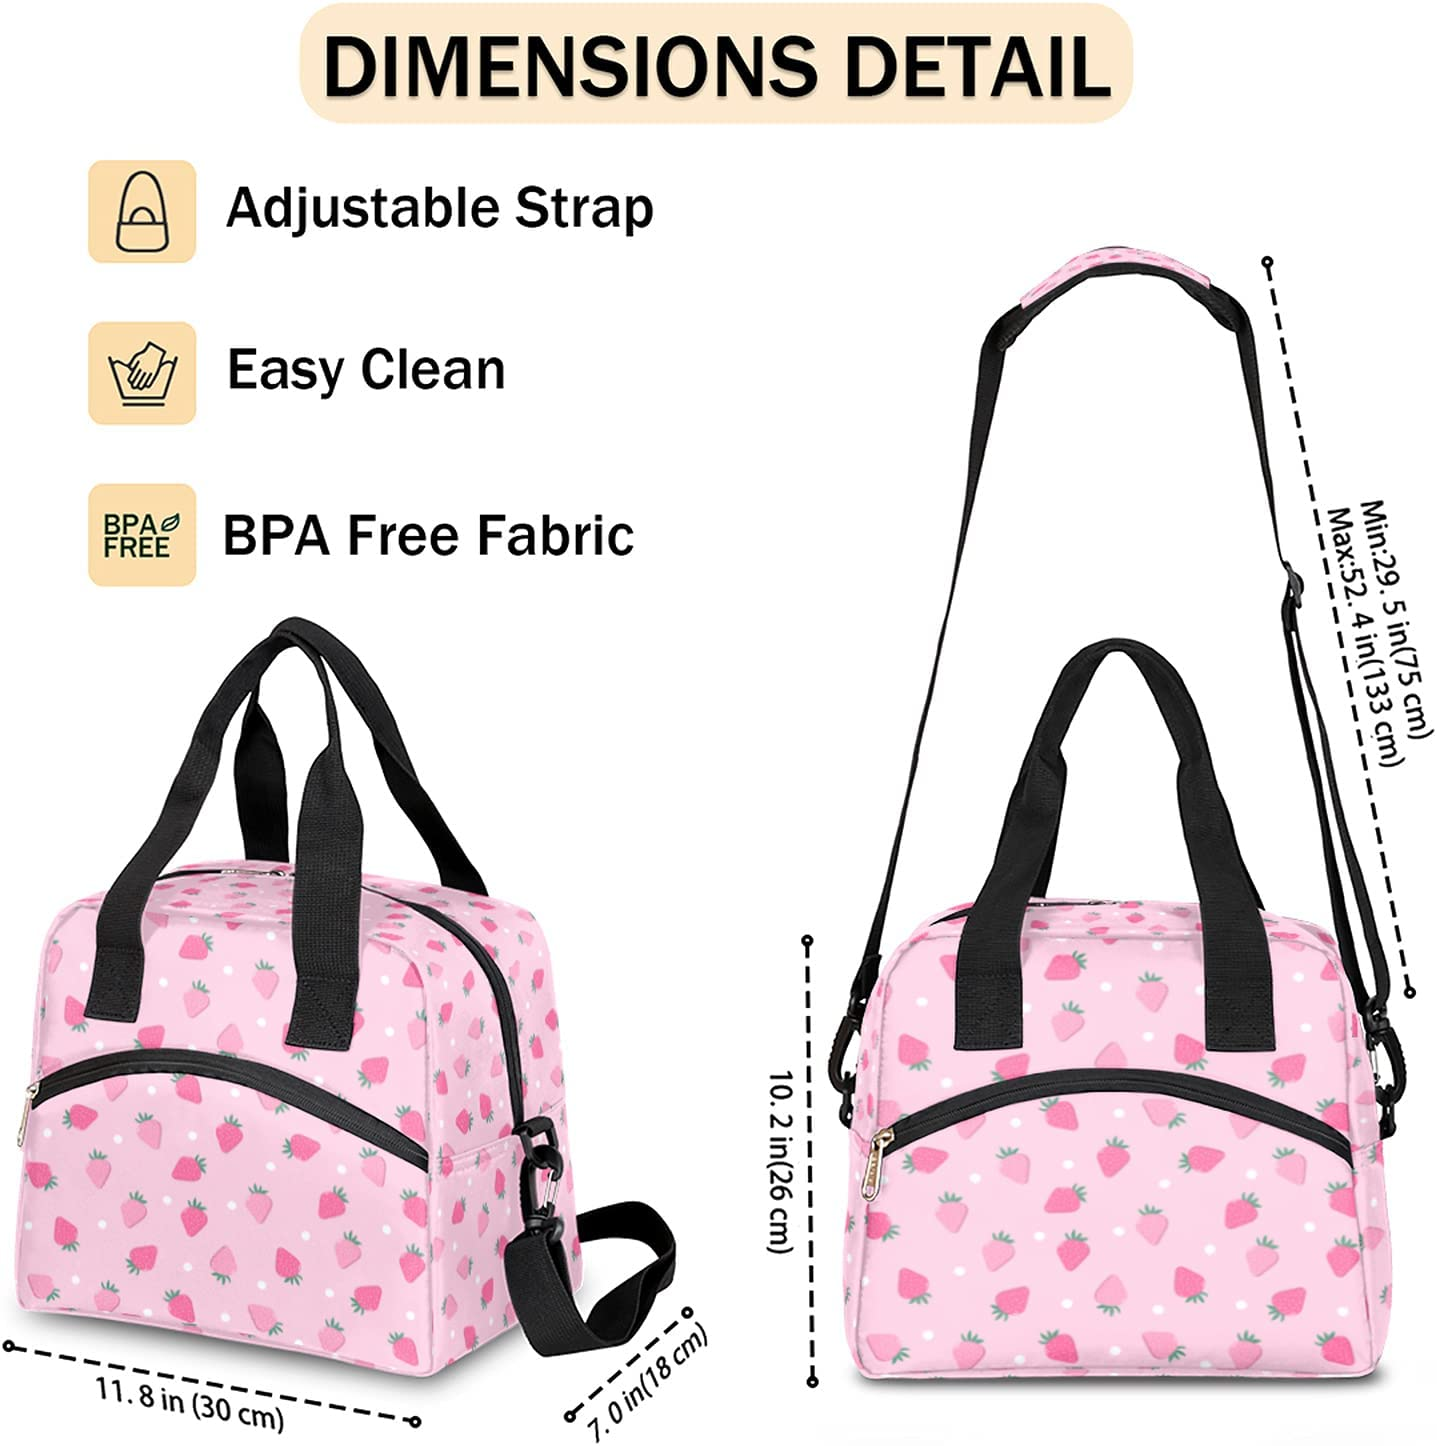 Pink Strawberry Insulated Lunch Bag Polka Dot Lunch Box for Women Girl with Shoulder Strap Tote Bag Reusable Large Containers Meal Prep for School Work Travel Picnic Thermal Cooler Bag